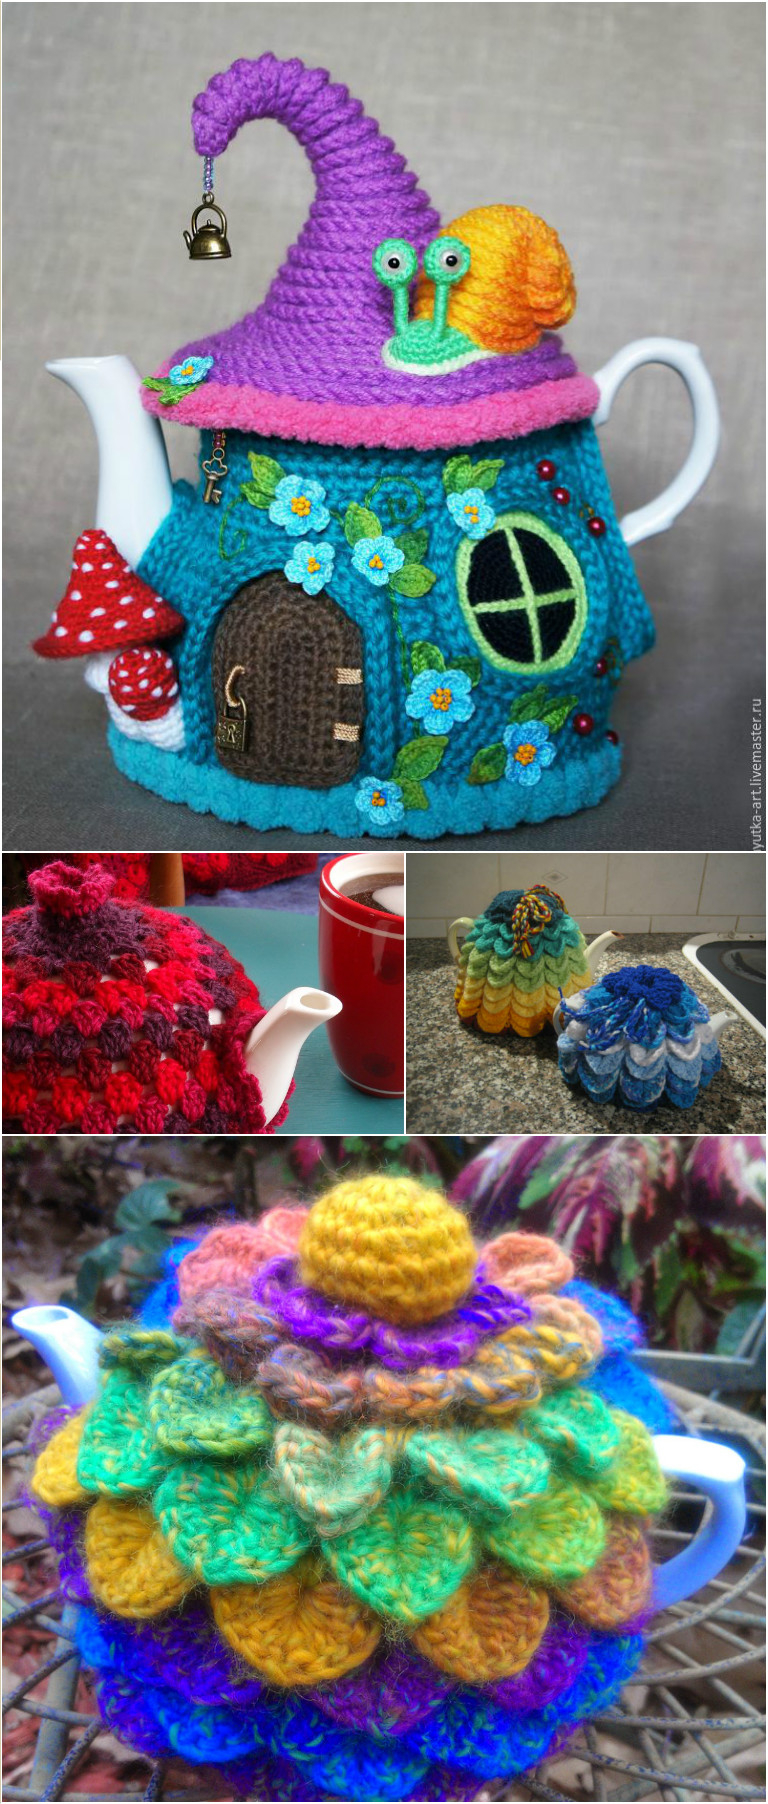 Tea Cosy Patterns To Knit These Fairy House Tea Cosy Patterns Are Absolutely Button Cute Pondic